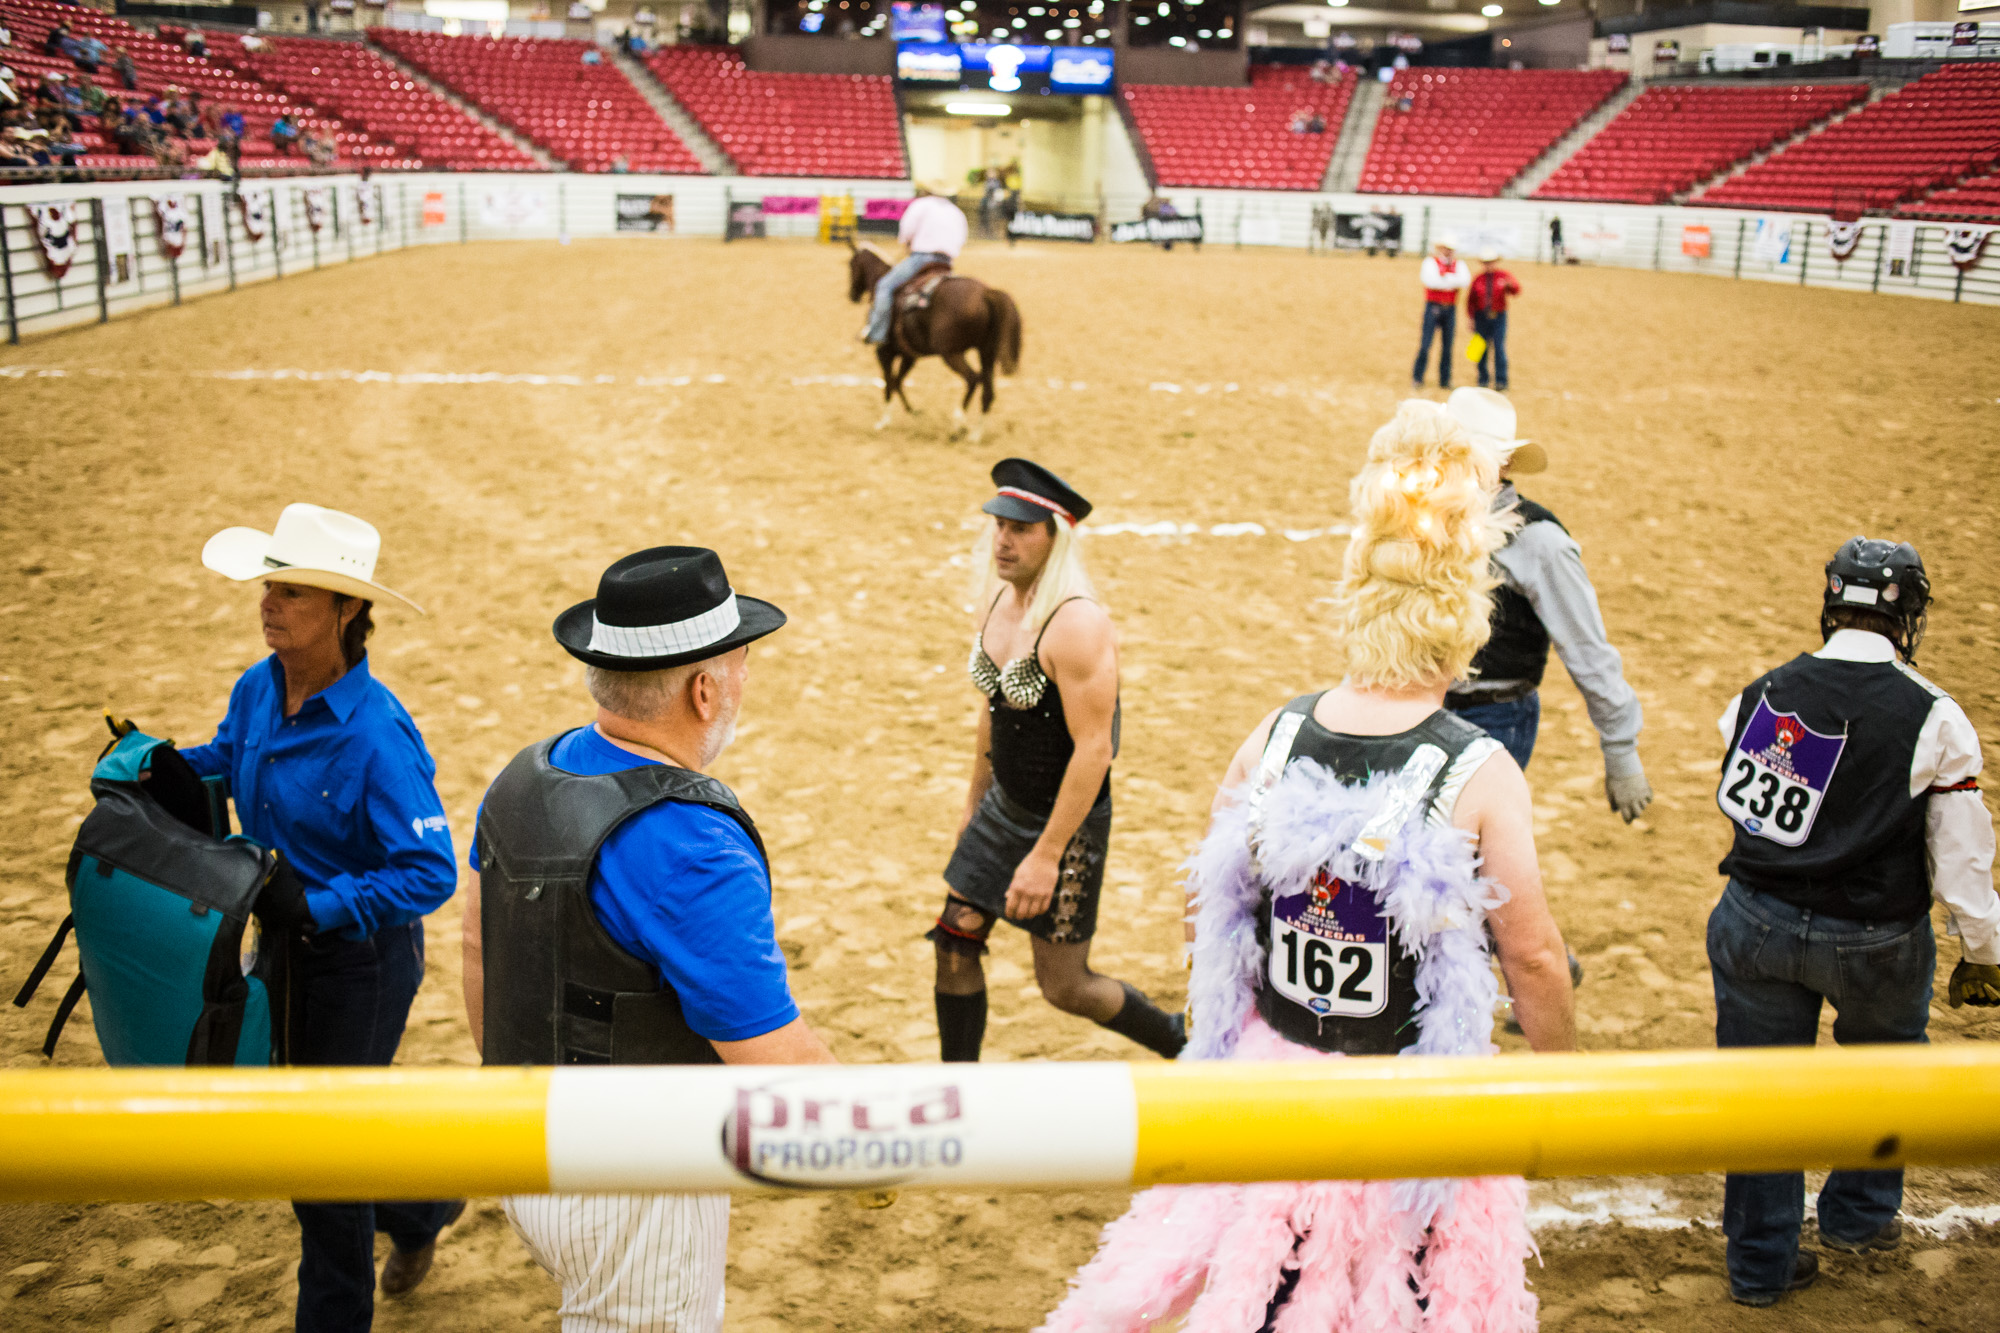 The Wild Drag Race is an event unique to the Gay Rodeo, which involves a 3-person team of a man and woman in costume, plus either a man or woman in drag. With the help of his/her teammates, the person in drag must try to mount a bucking steer after being released from the chute.